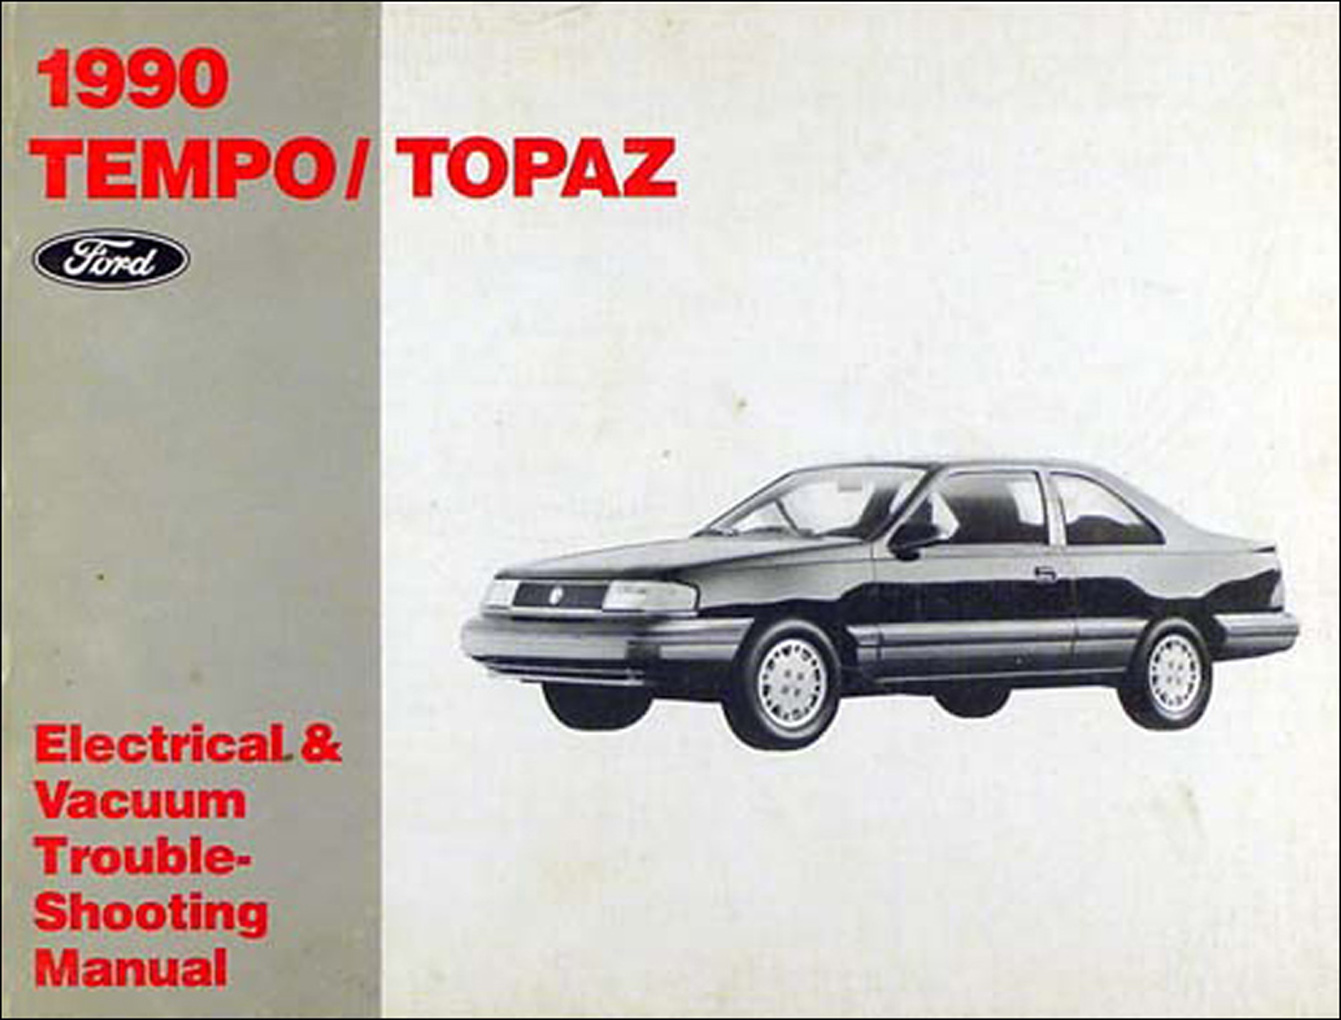 1990 Ford Tempo Mercury Topaz Electrical Vacuum Troubleshooting Manual